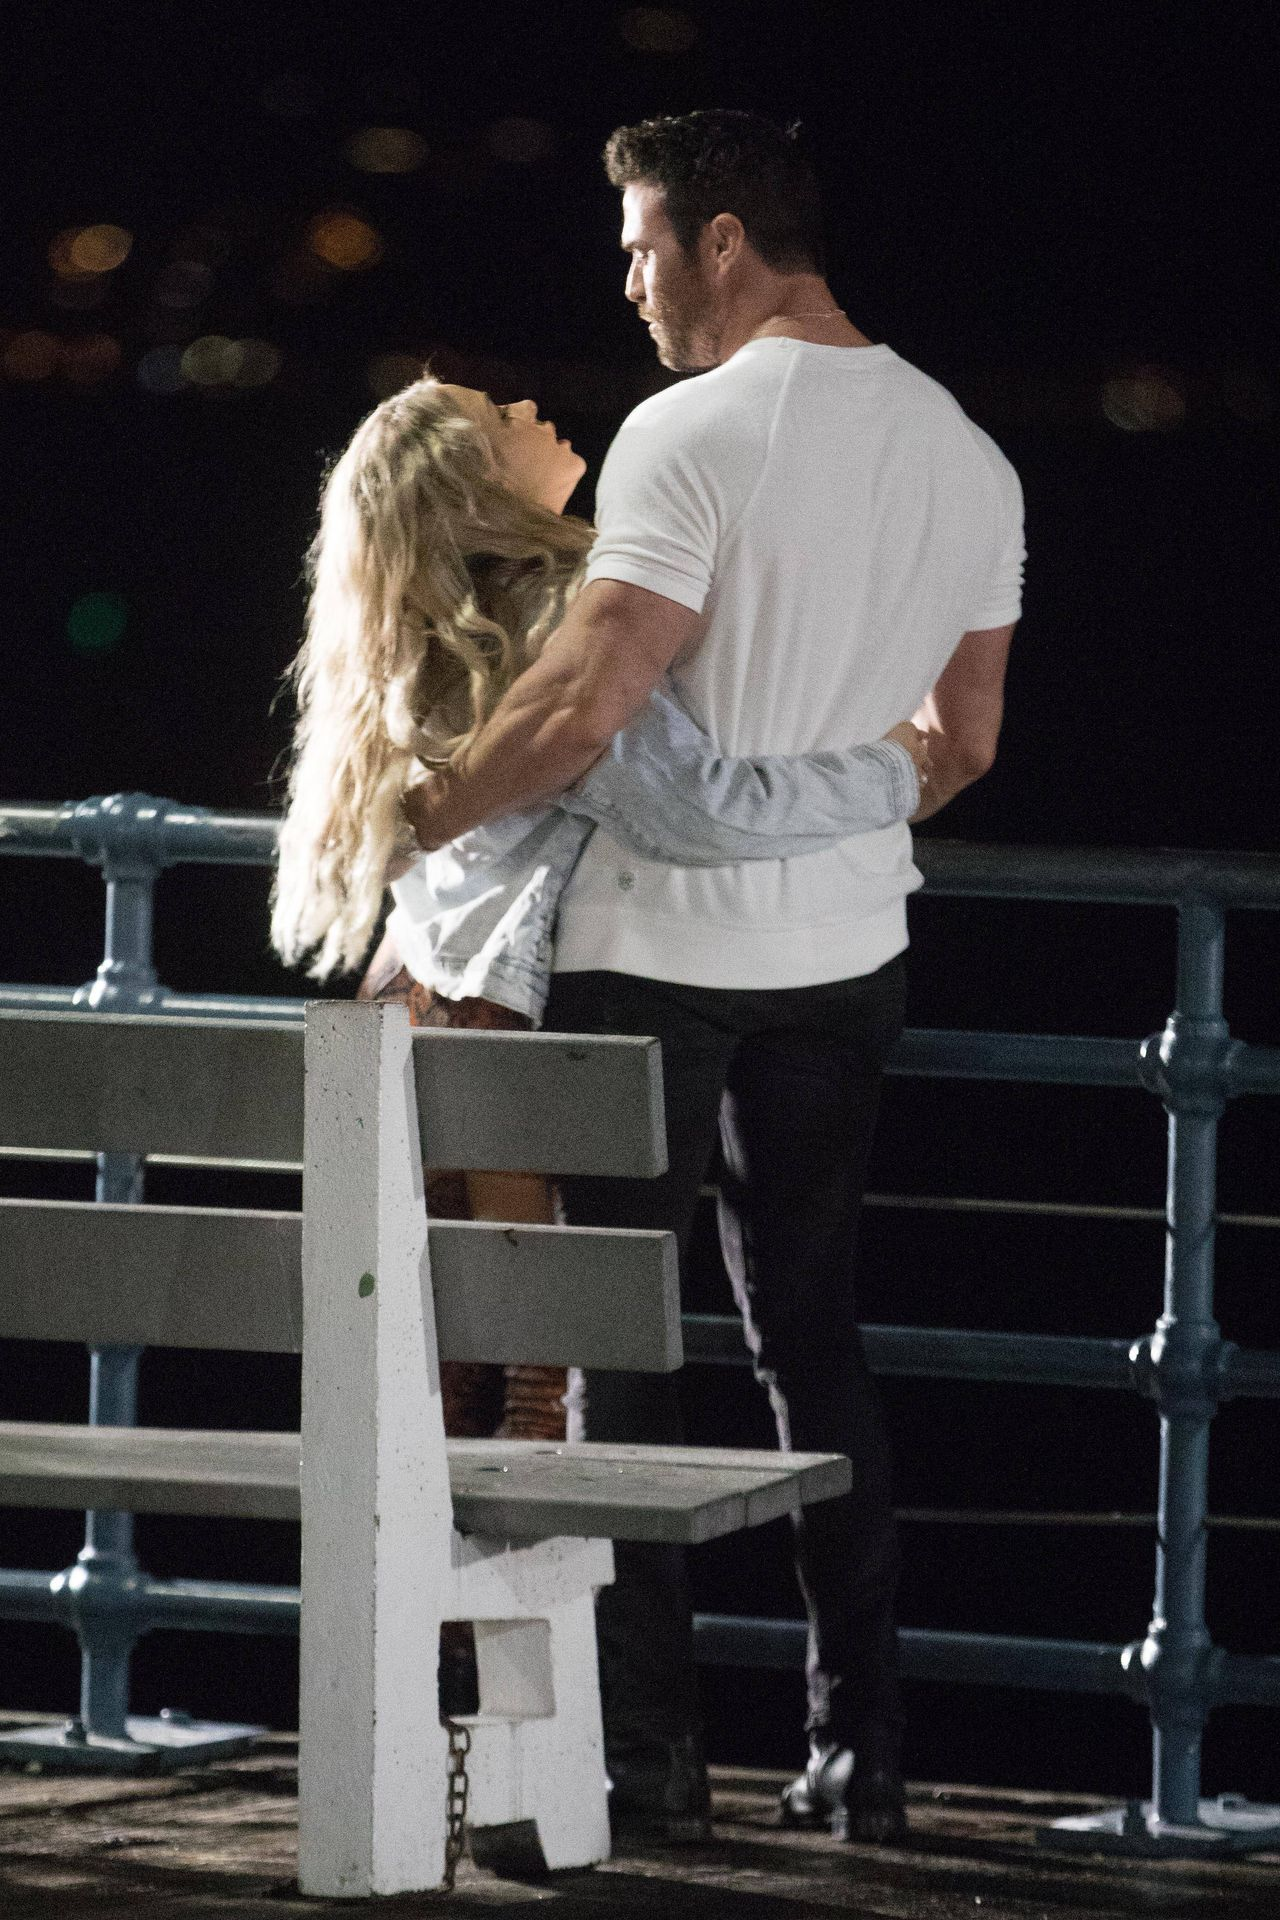 Chad Johnson & Annalise Mishler Are Seen On A Low Key Date At The Santa Monica Pier 0017